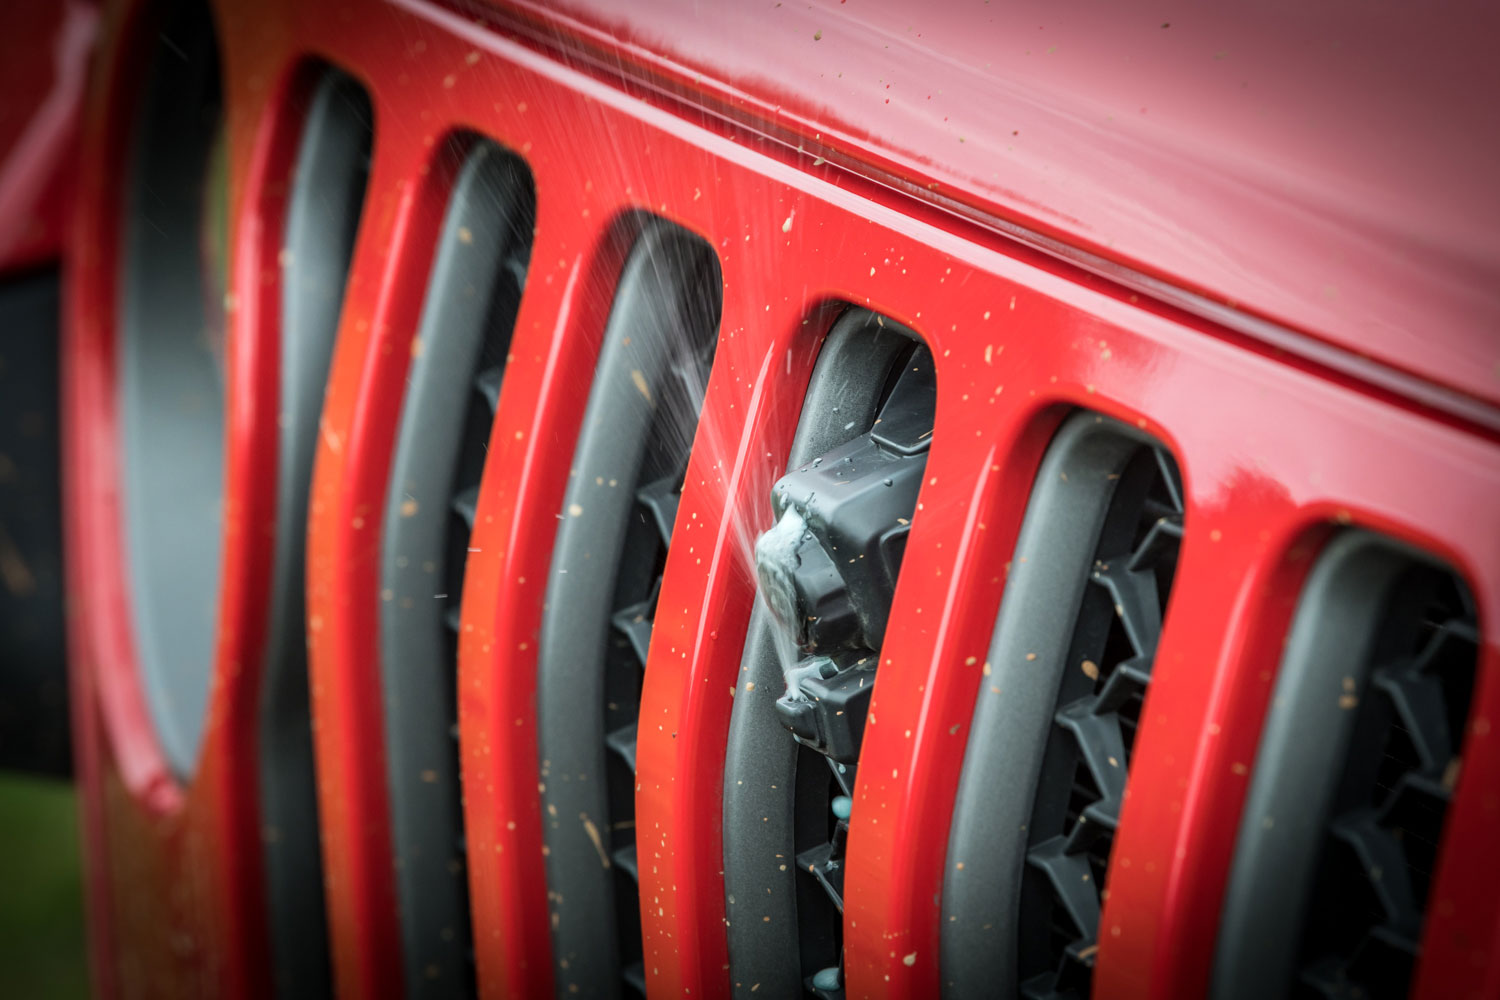 Jeep Gladiator Pickup Truck grille